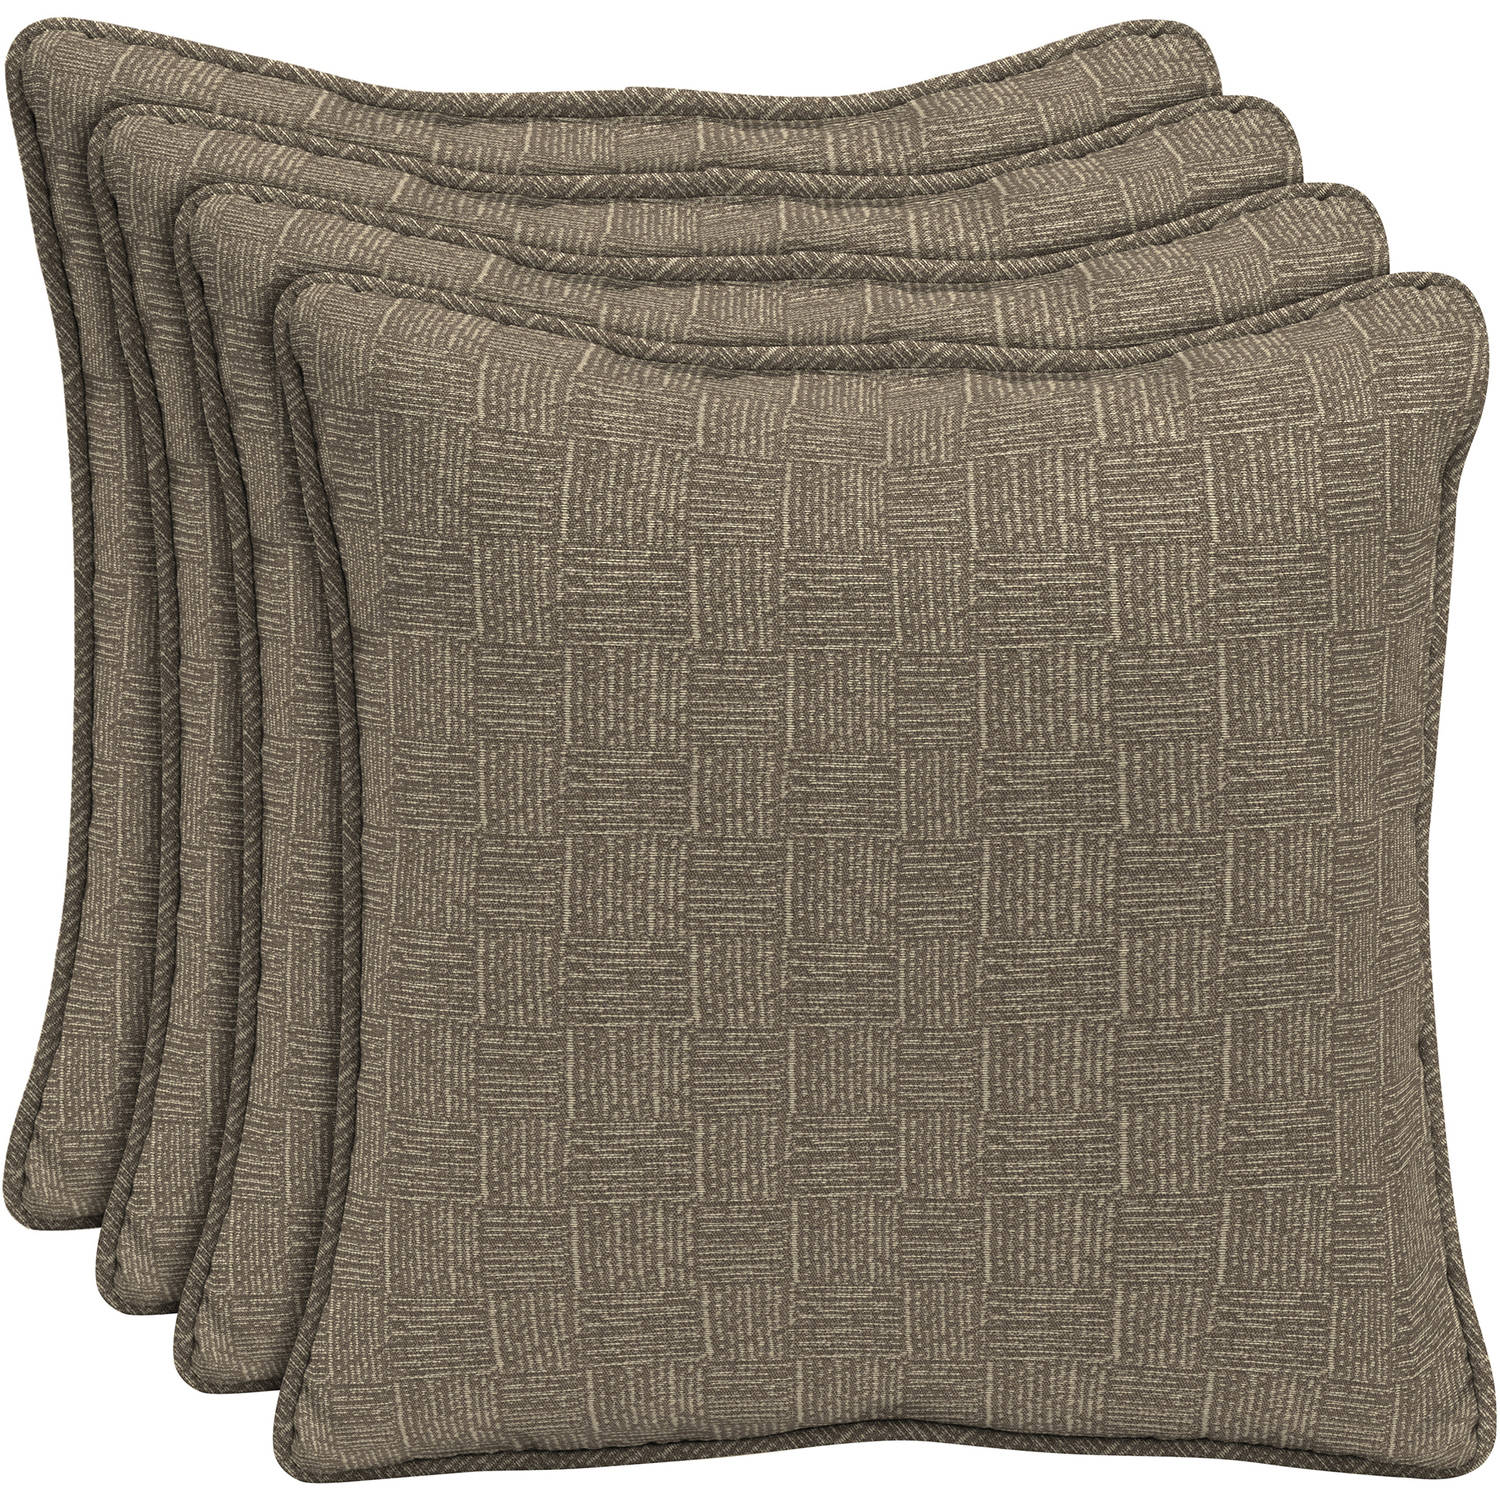 "Arden Outdoors 18"" Square Pillow with Welt, Set of 4"